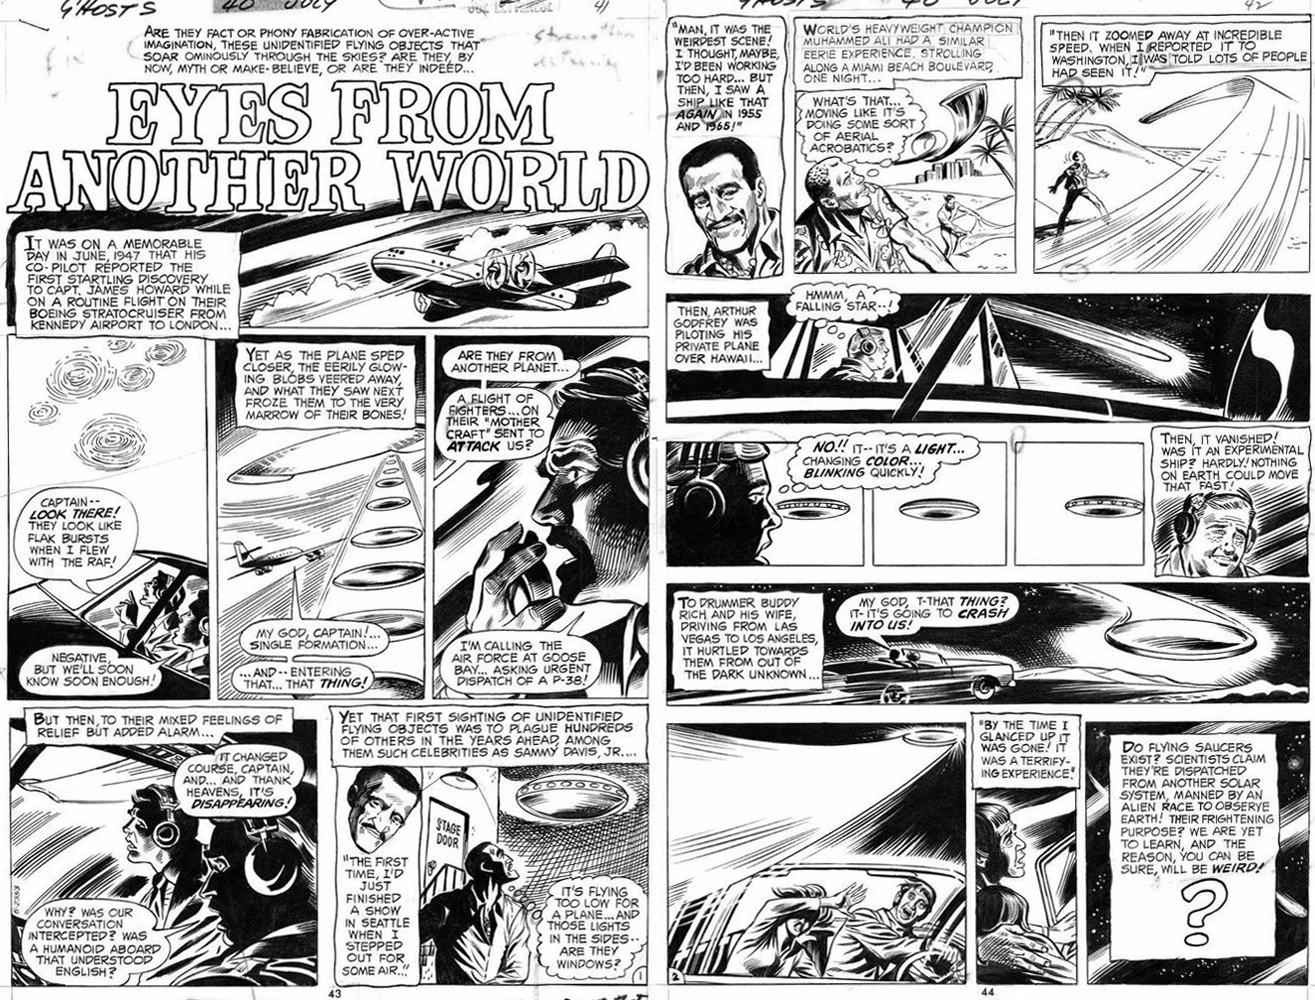 DC Ghosts #40 July 1975 Eyes From Another World